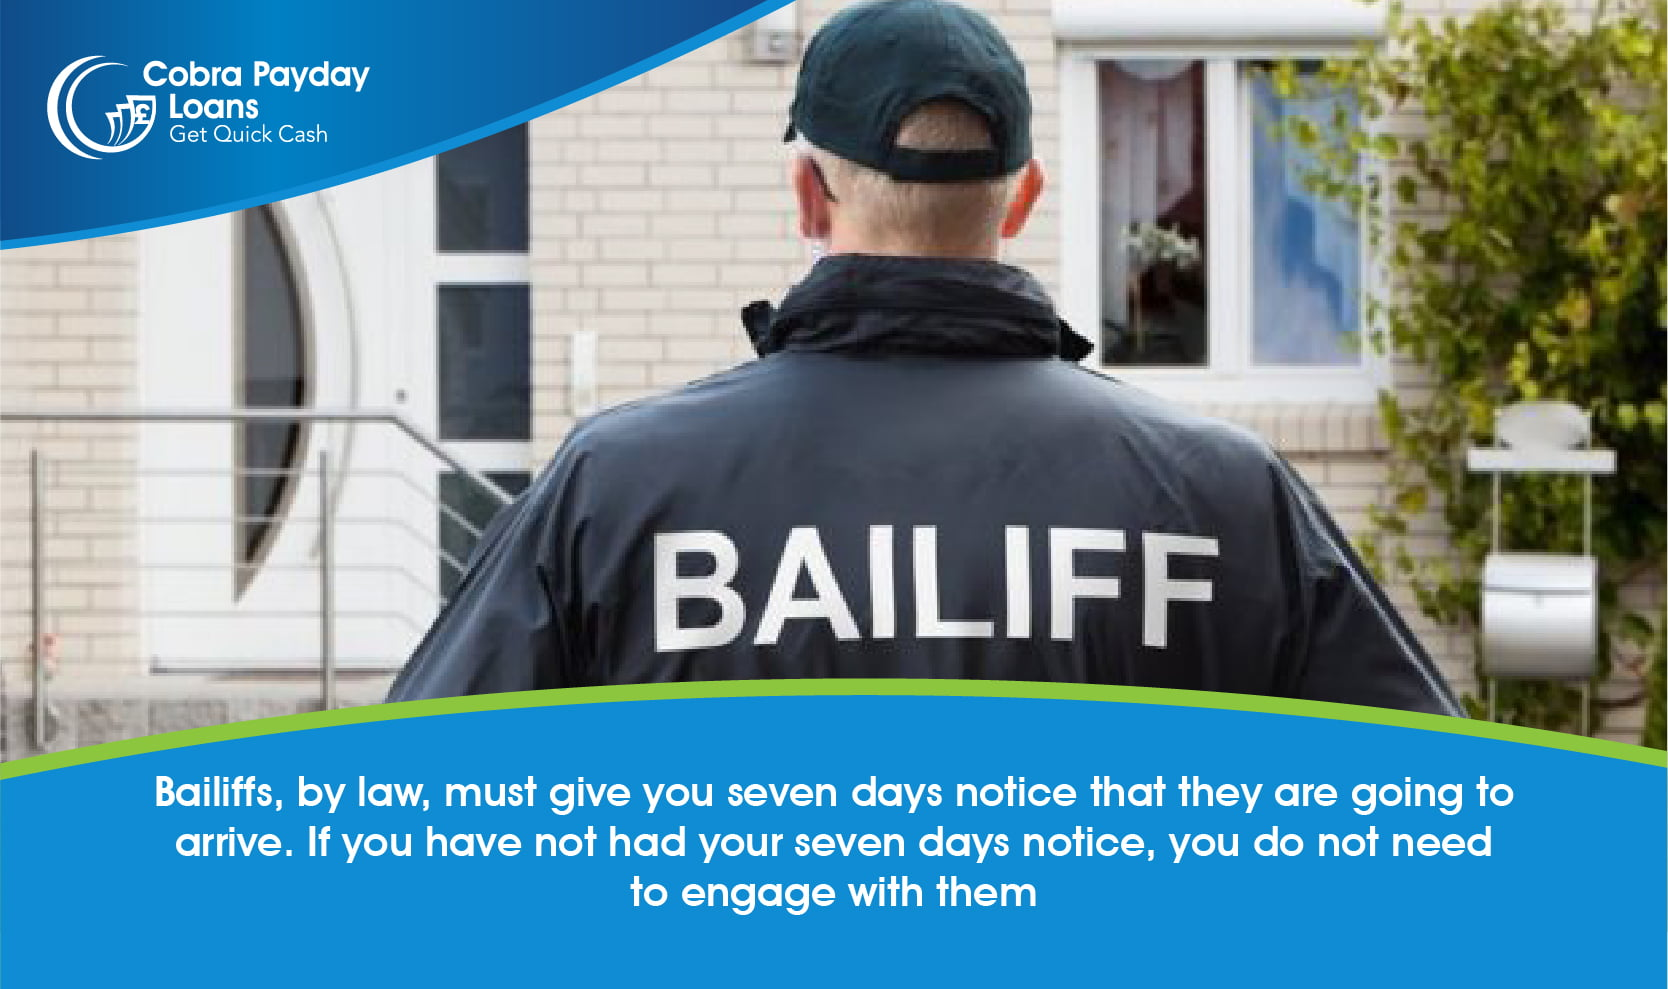 Baillifs have to give you 7 days notice